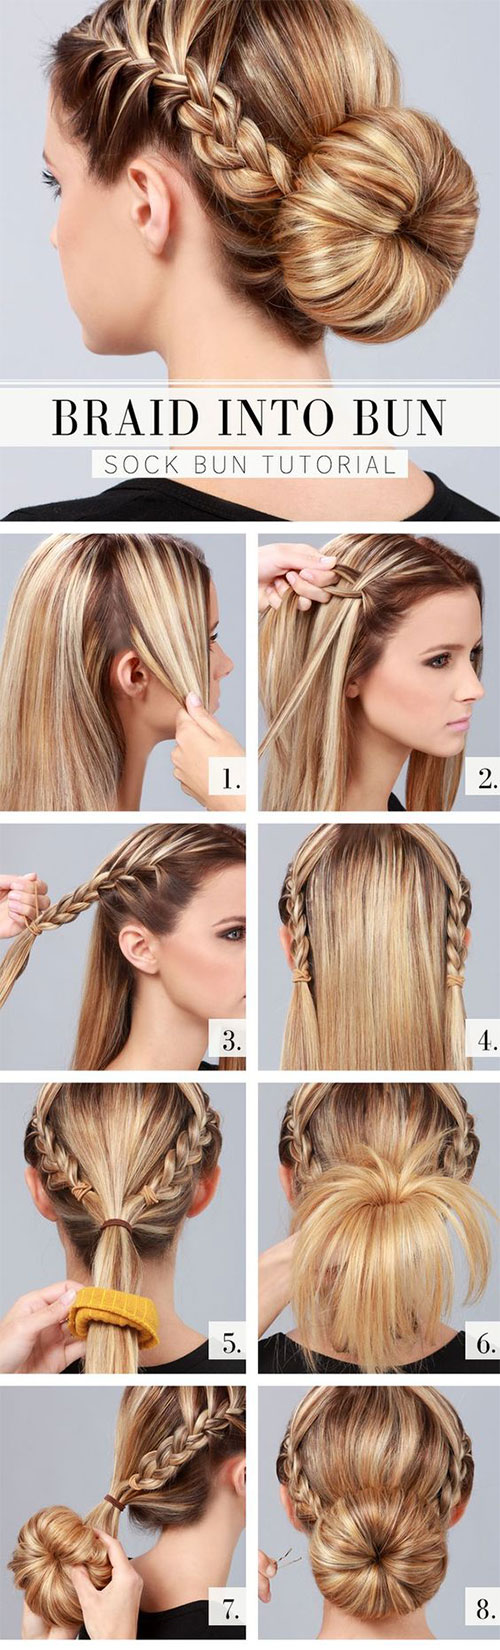 12+ easy step by step summer hairstyle tutorials for